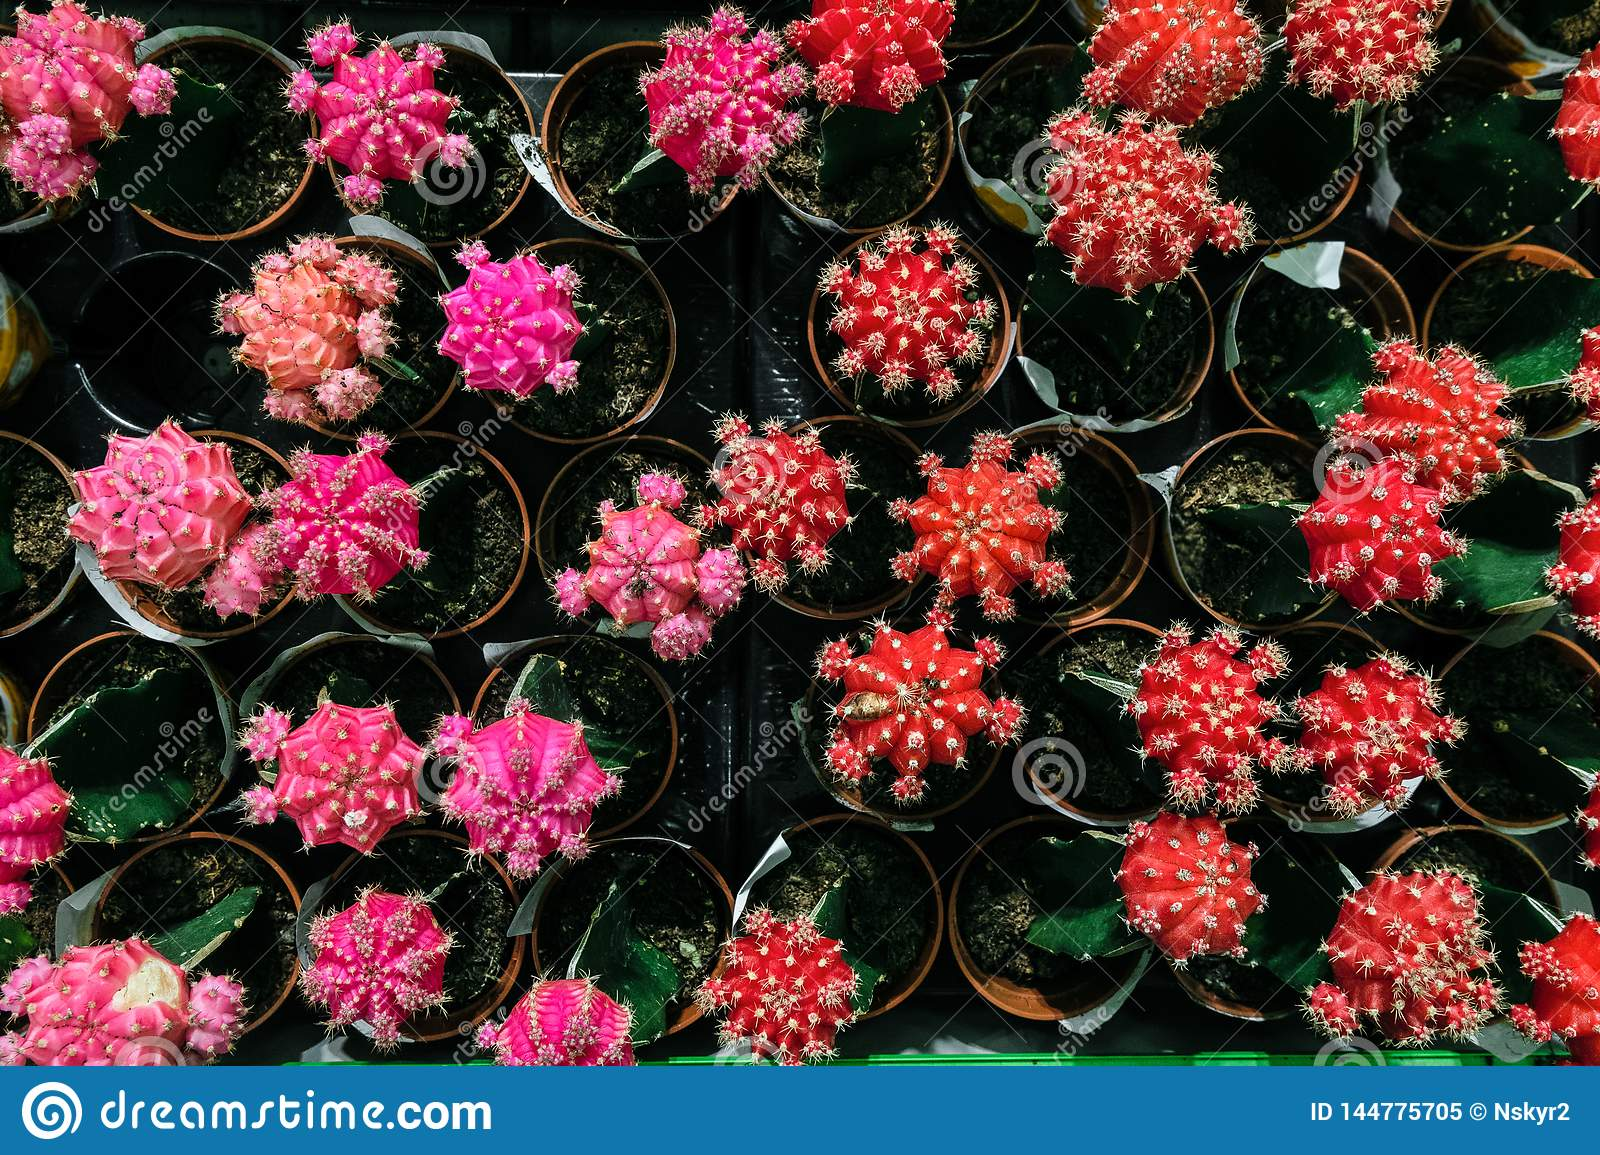 Pink and red Gymnocalycium cactus flowers in pots. Indoor ornamental plant.